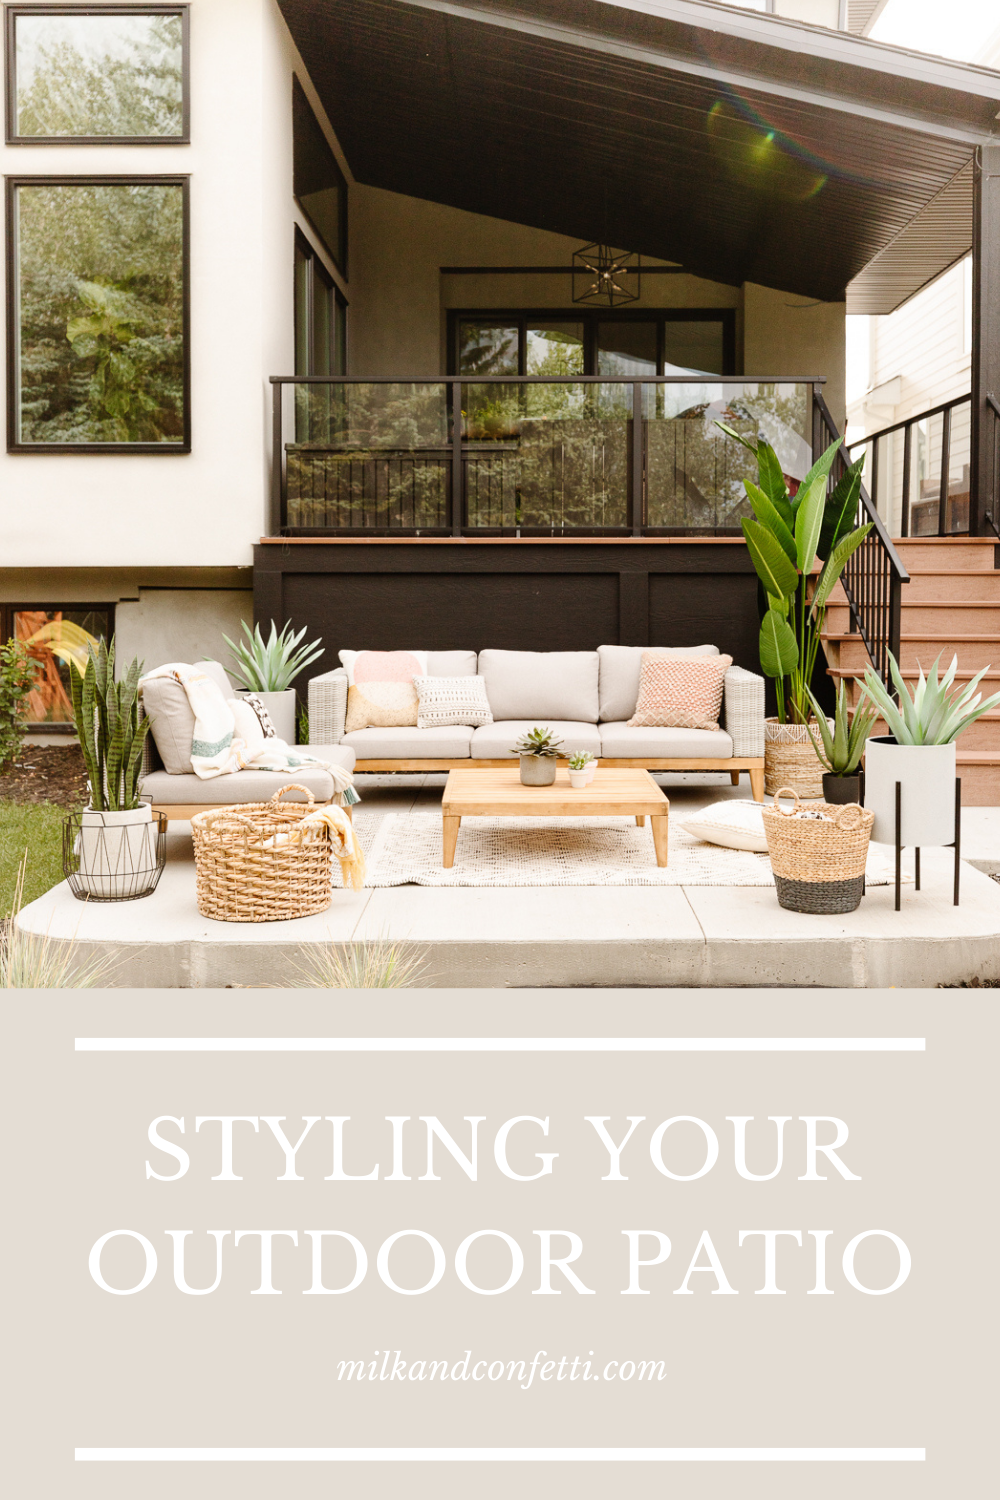 Outdoor patio wood fence with string lights neutral wicker sofa wood legs with beige fabric patterned throw cushions beige and black area rug teak coffee table with succulent pots black metal pot stand with aloe plant chair with striped throw blanket